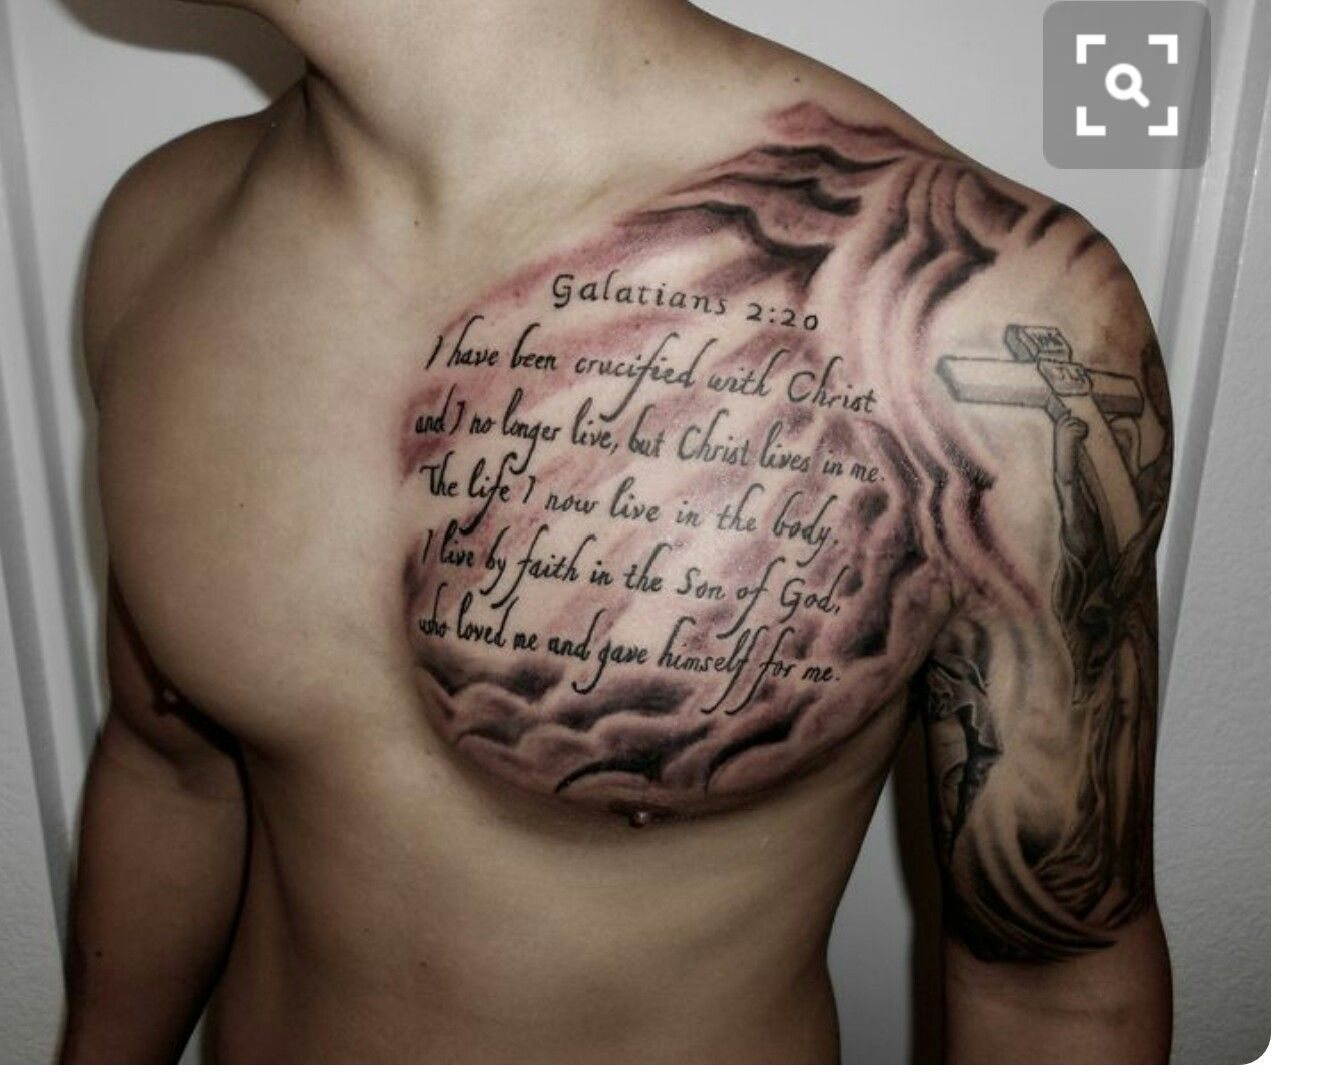 Pin By Michelle Frank On Tattoos Tattoos Scripture Ideas And Designs